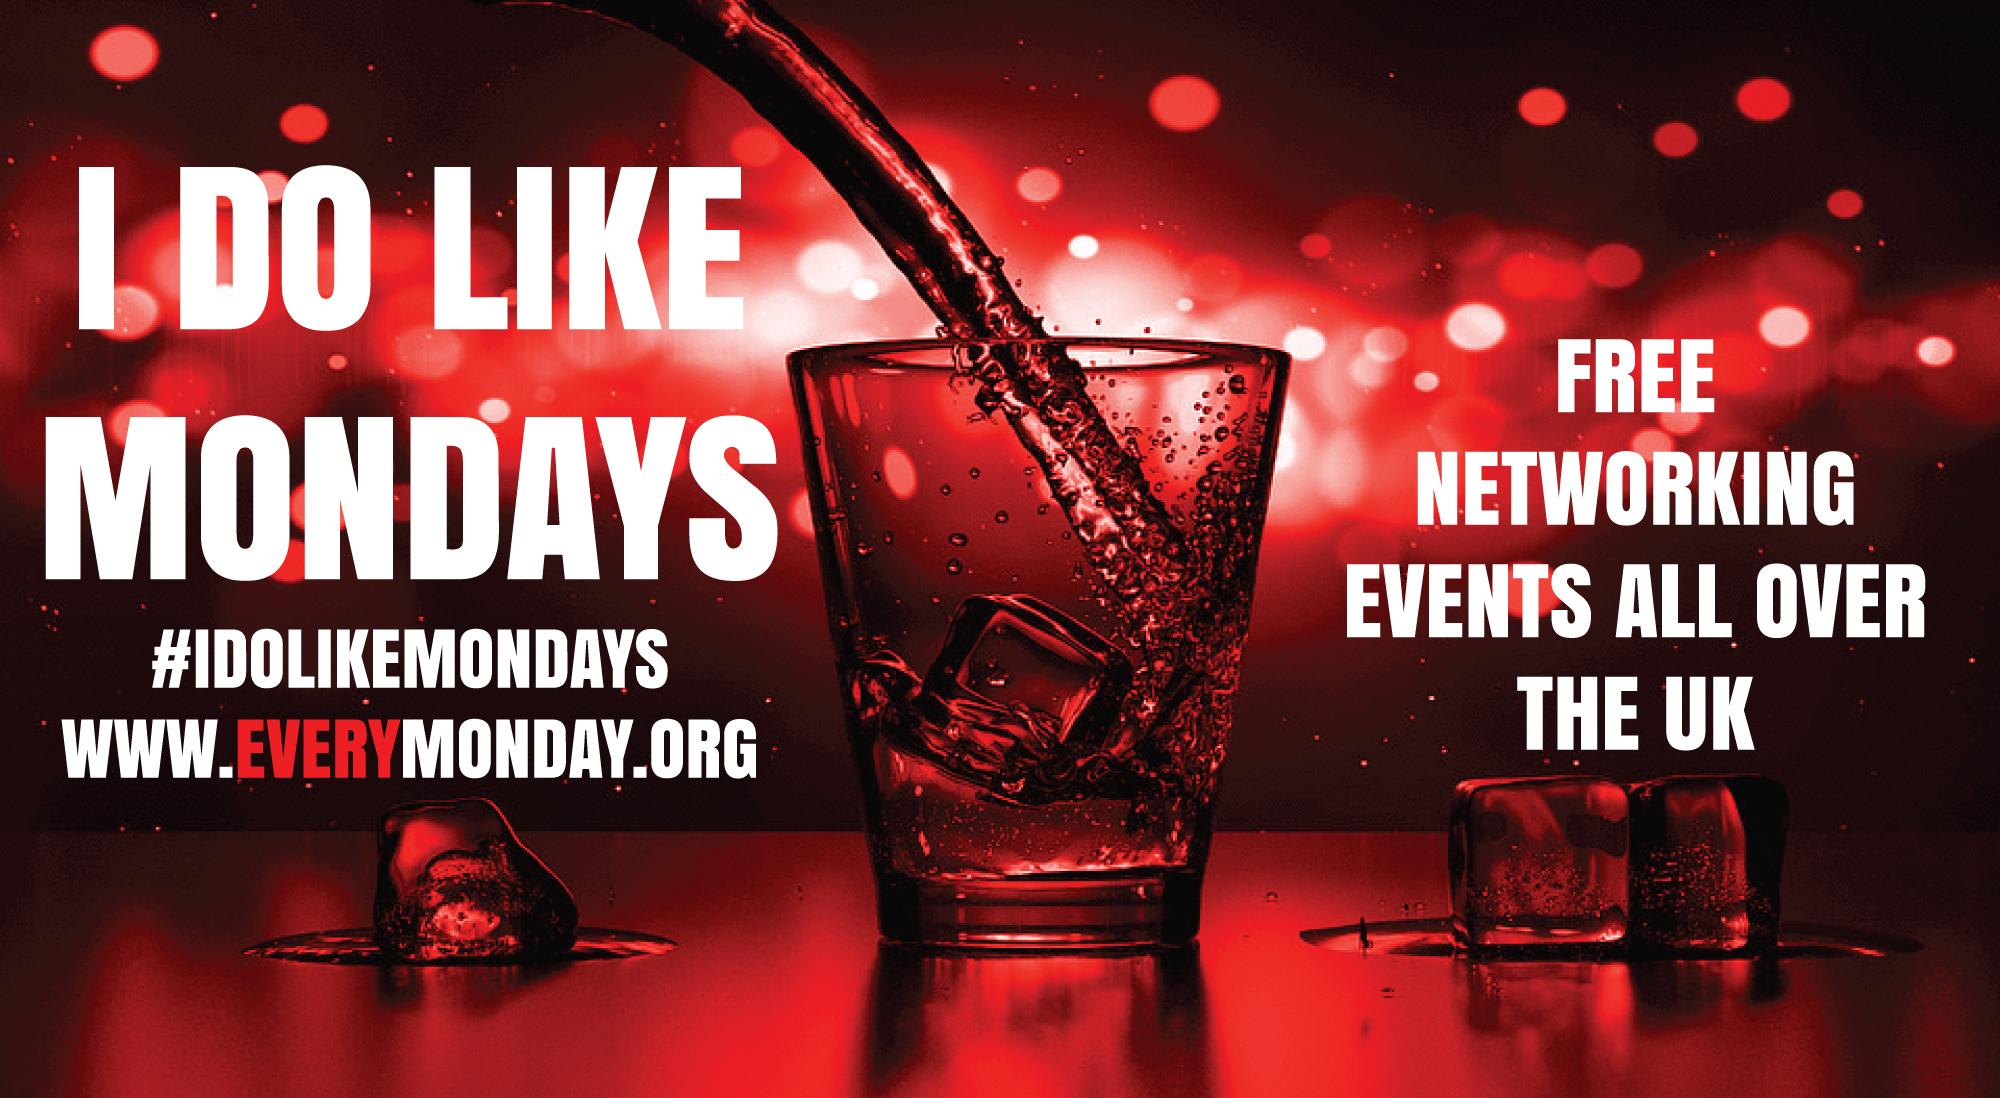 I DO LIKE MONDAYS! Free networking event in Barnsley